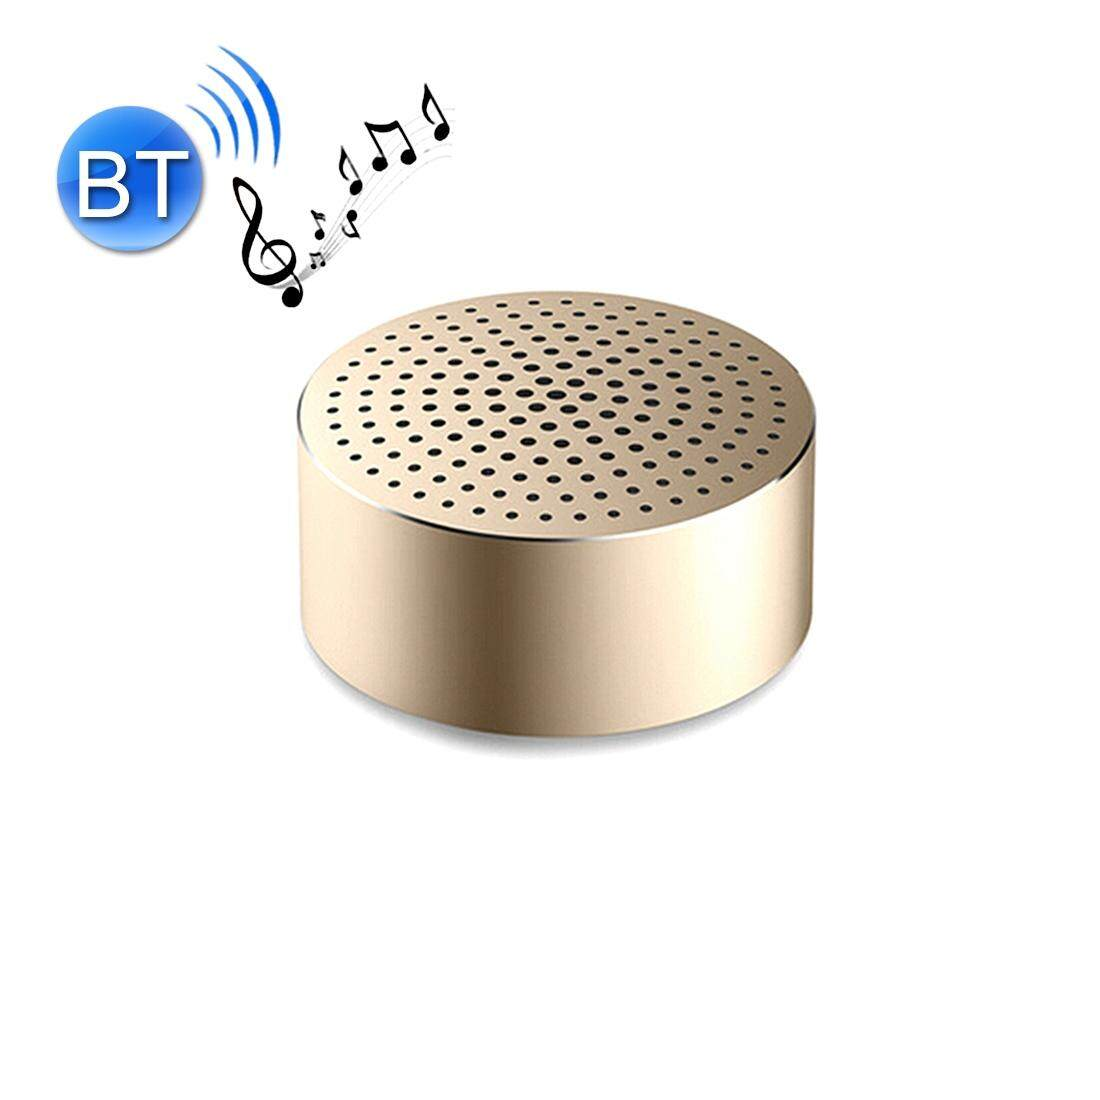 Buy Sell Cheapest Original Xiaomi Pocket Best Quality Product Mifa M1 Bluetooh Portable Garansi Resmi Bluetooth Speakers Wireless Mini Stereo Metal Body Subwoofer Audio Receiver For